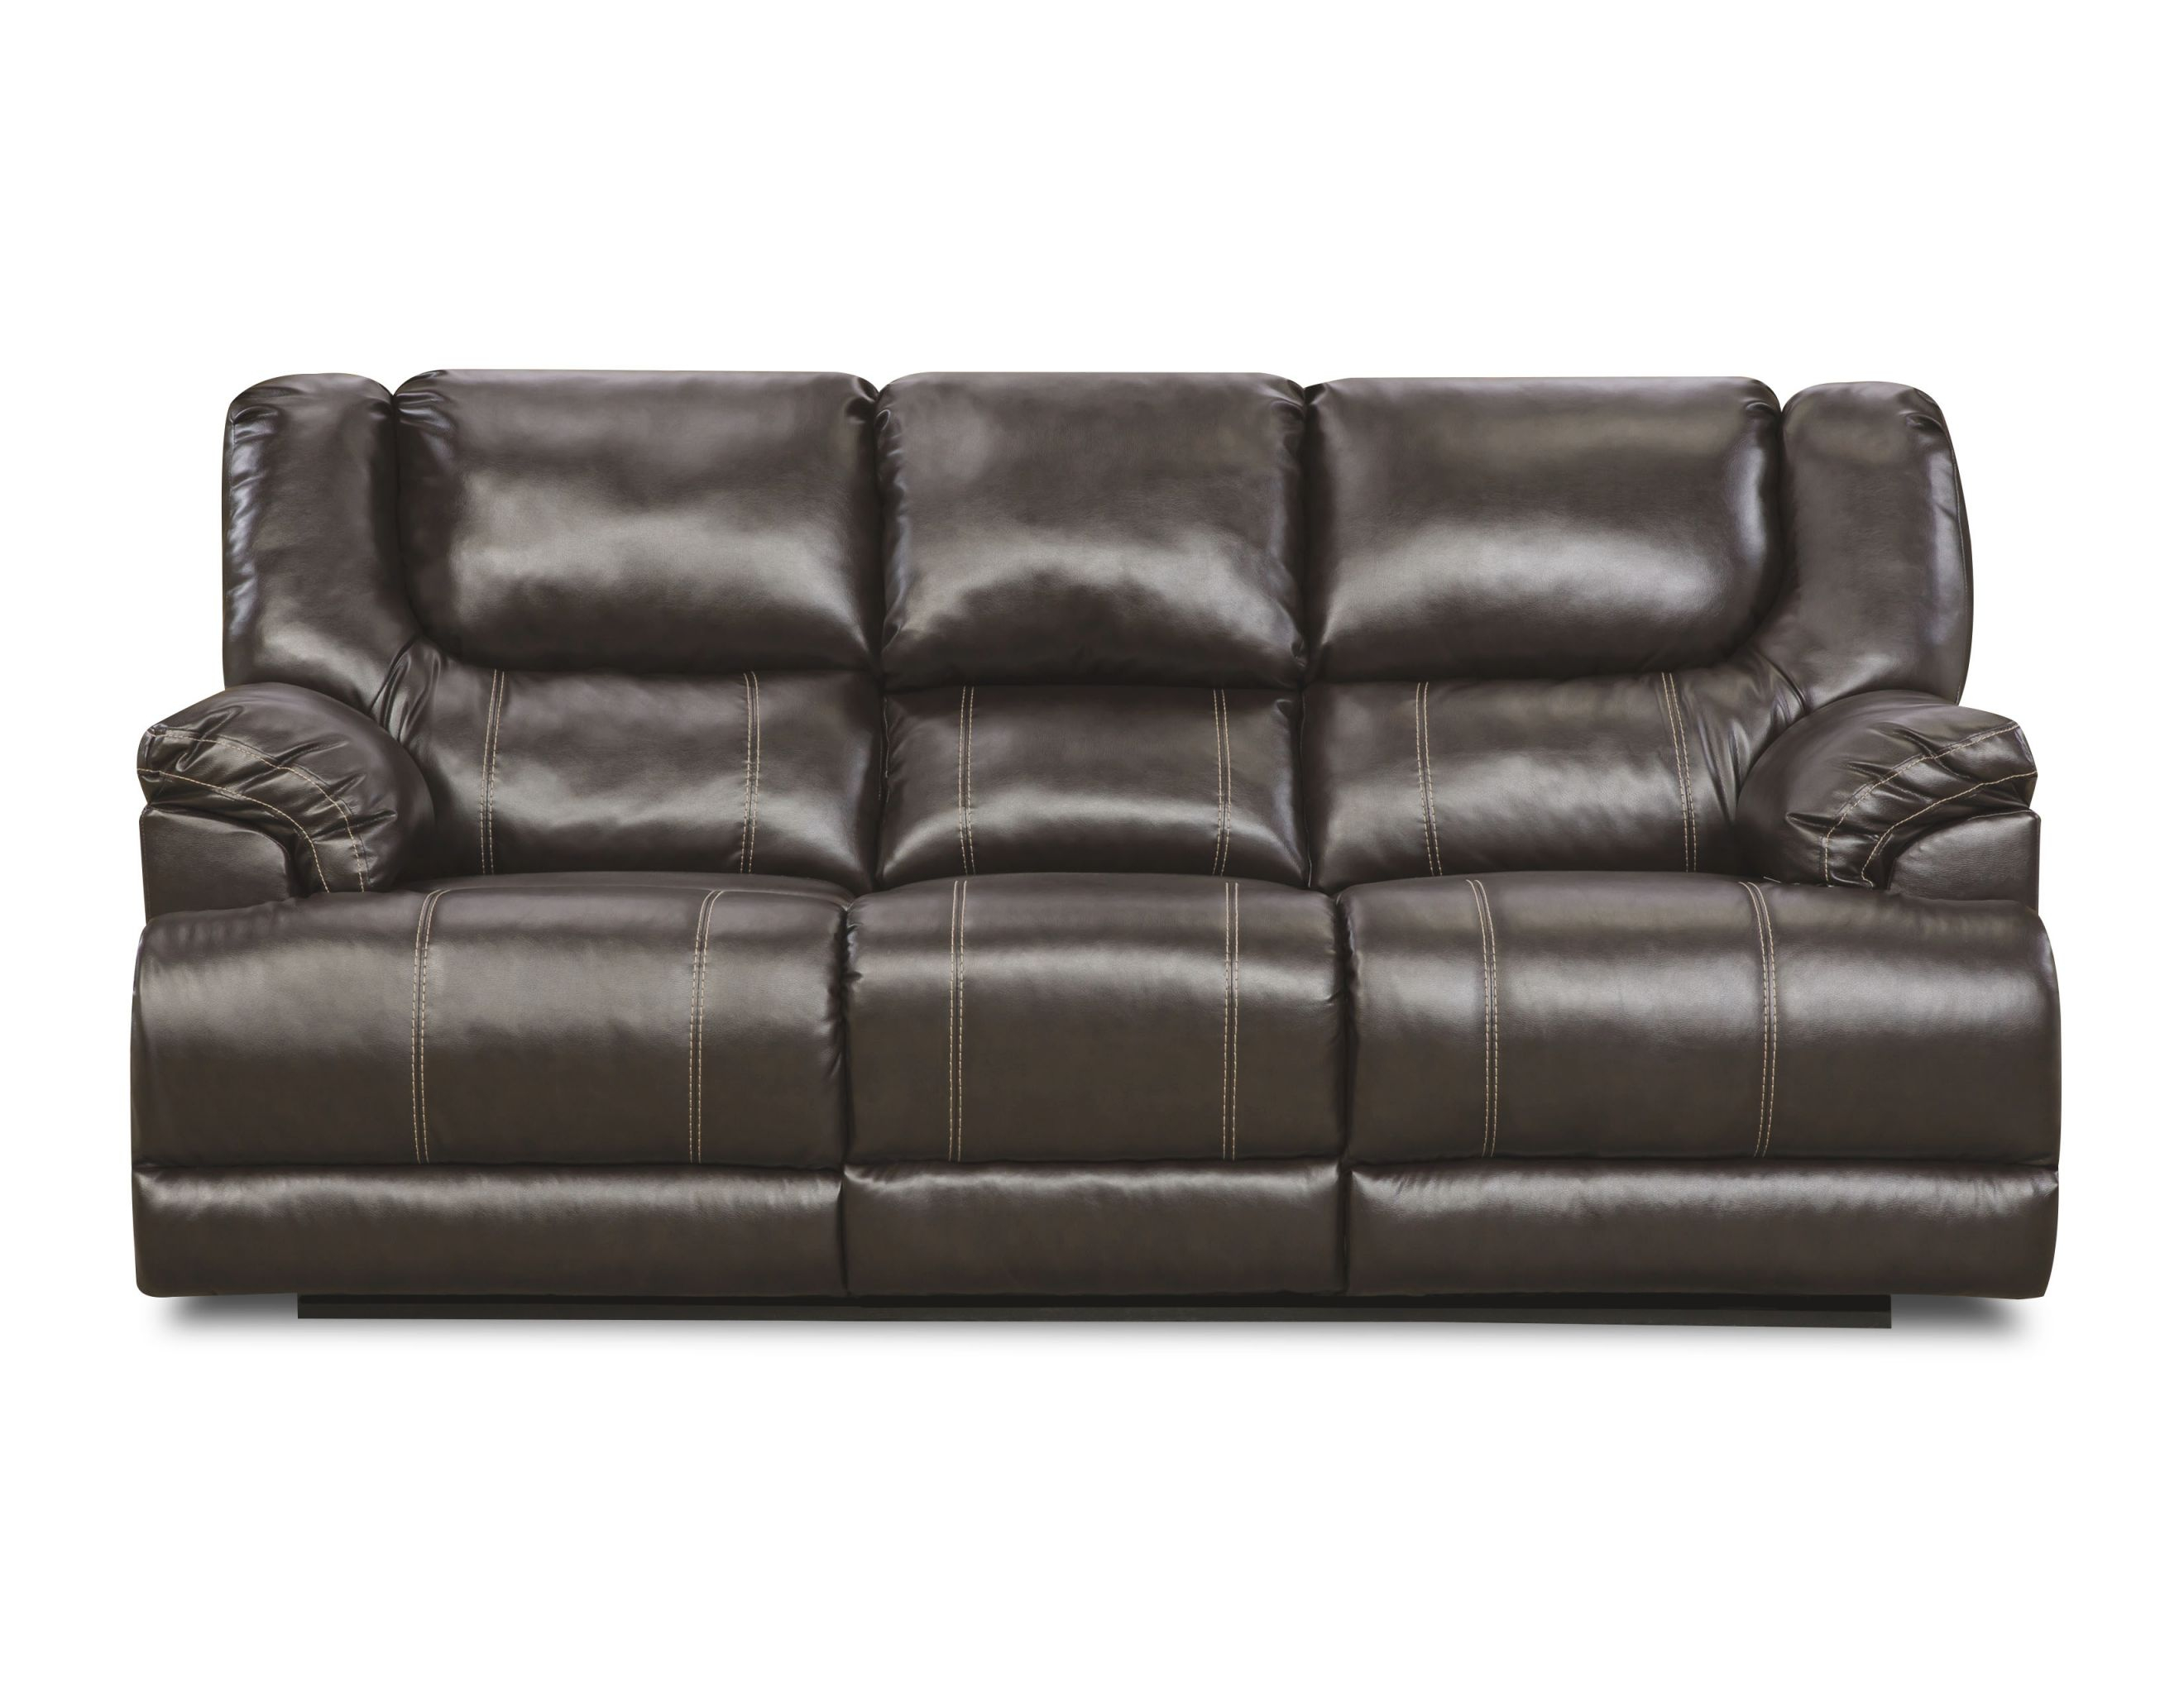 Sears Ca Reclining Sofa | Home Furniture Decoration regarding Unique Sears Living Room Furniture